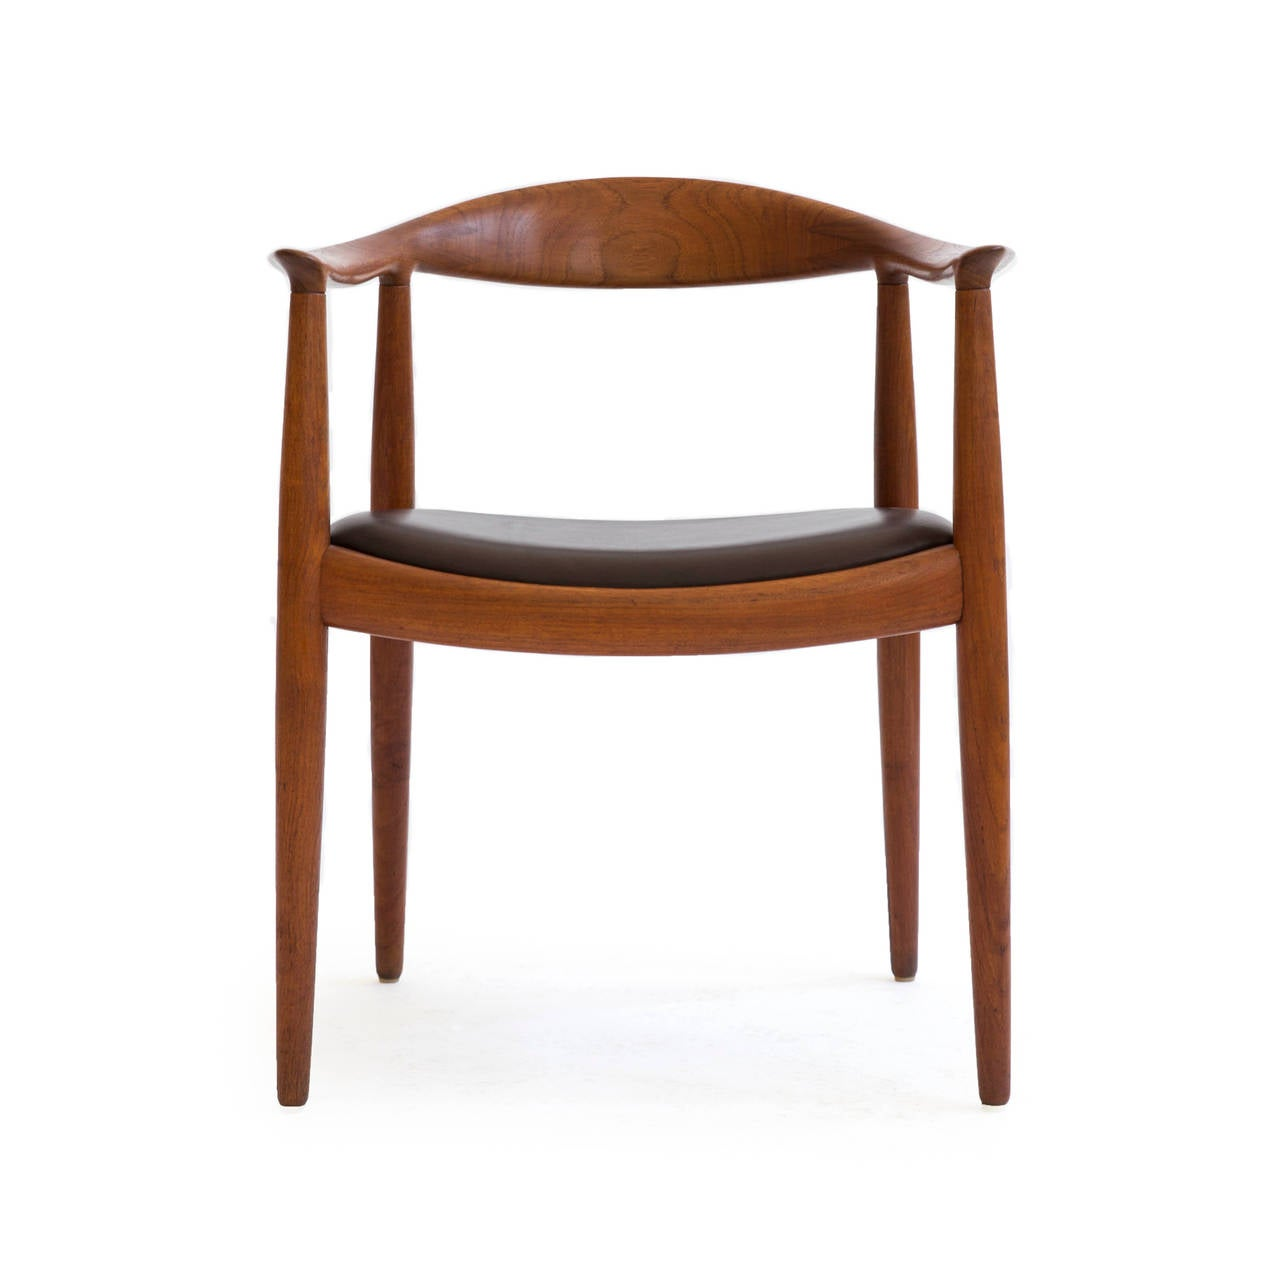 Hans J. Wegner 'The chair' in teak and dark brown leather seat. 